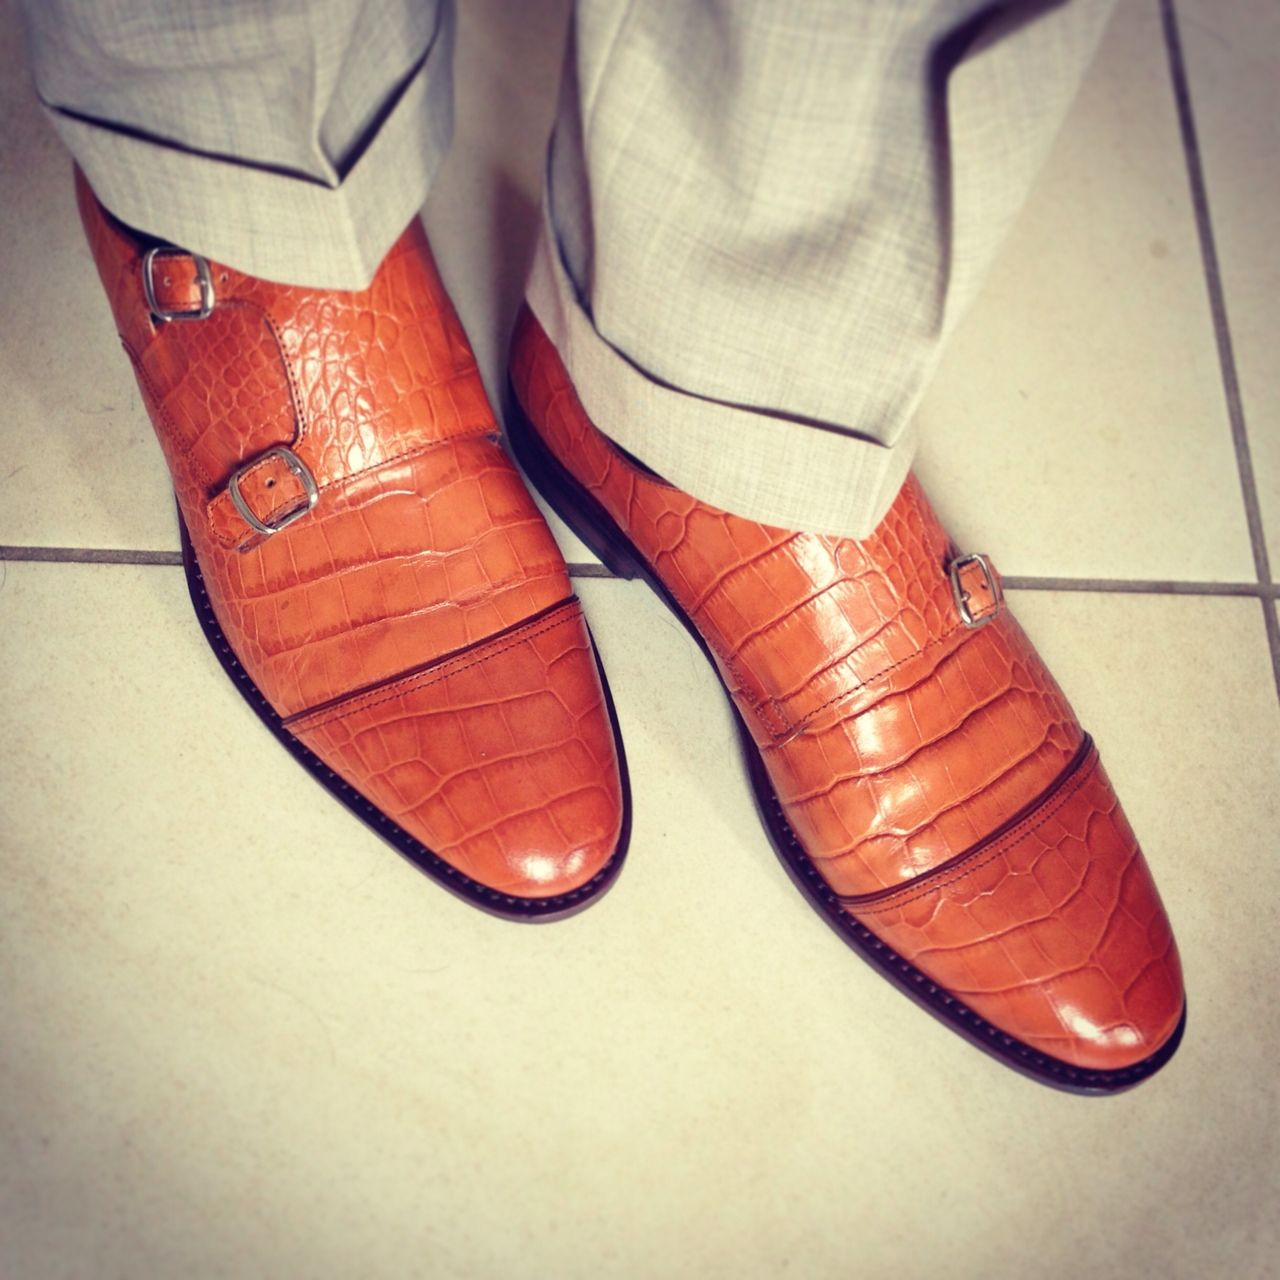 Even a gentleman needs some new shoes from time to time. Just got me these for summer. Handmade doublemonk, goodyear welted, boxcalf in cognac croc. Suit by Ermenegildo Zegna.